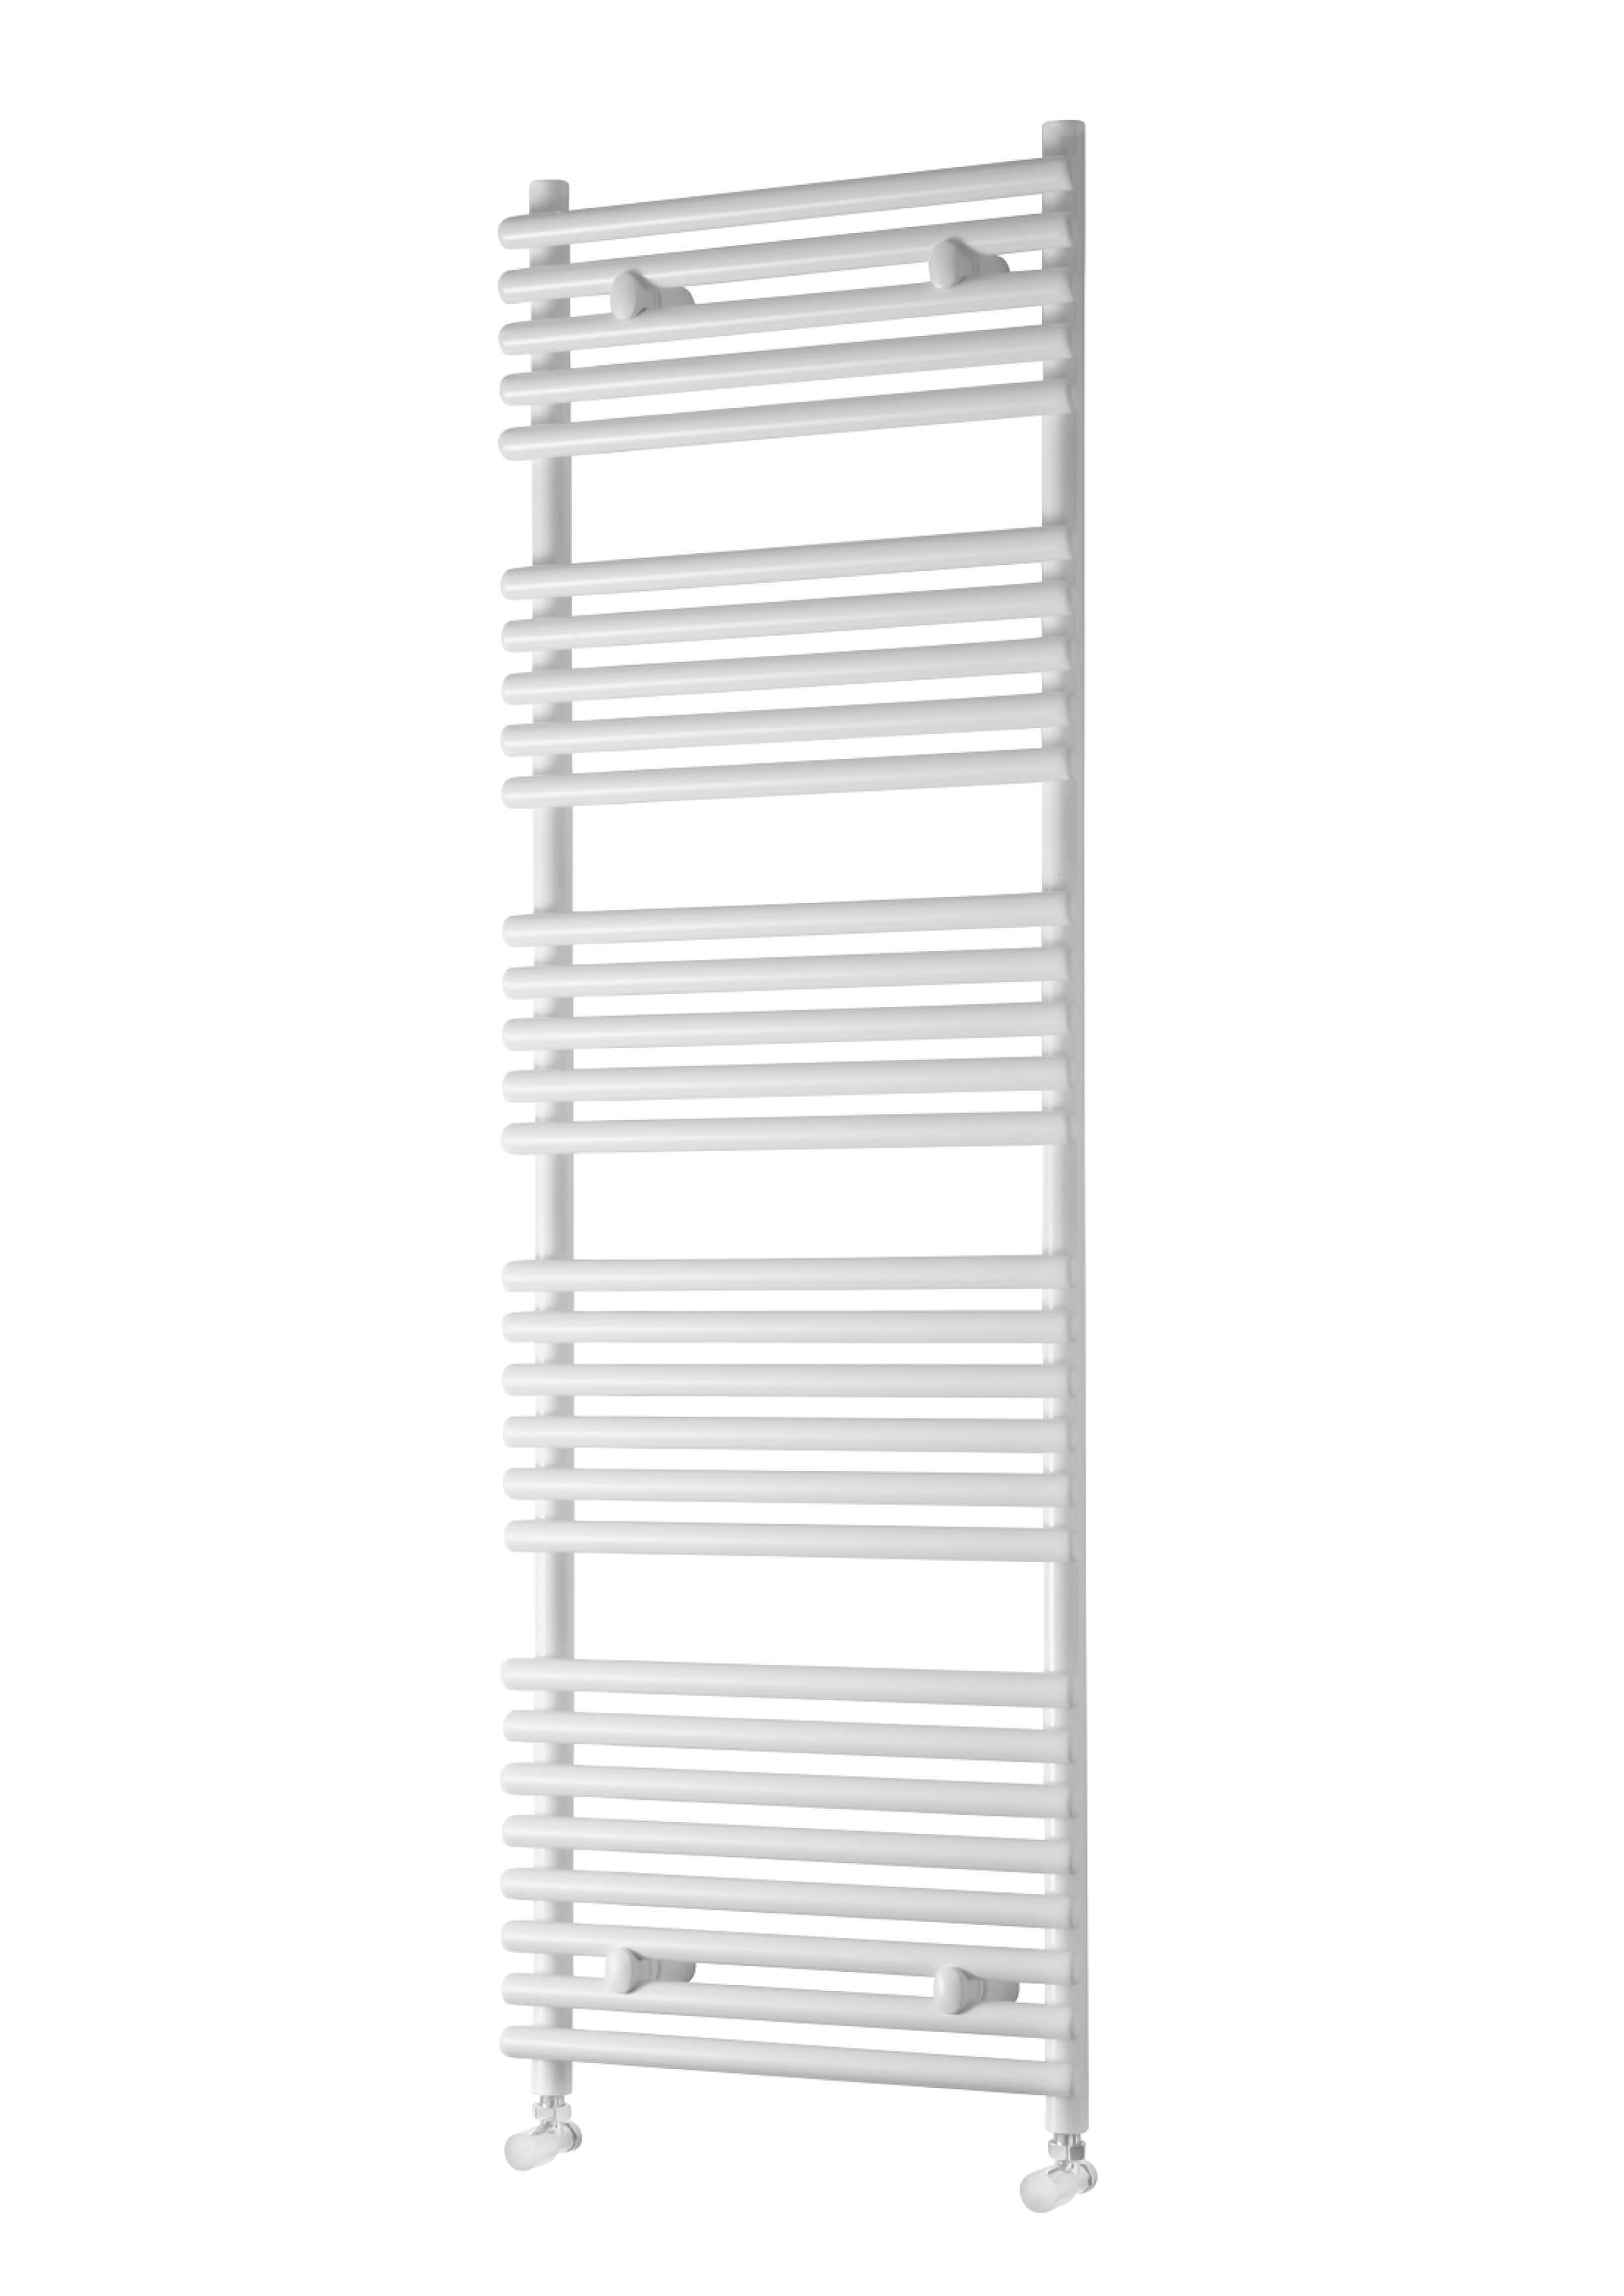 The Designer Radiator Company  Towelrads Iridio Towel Rail